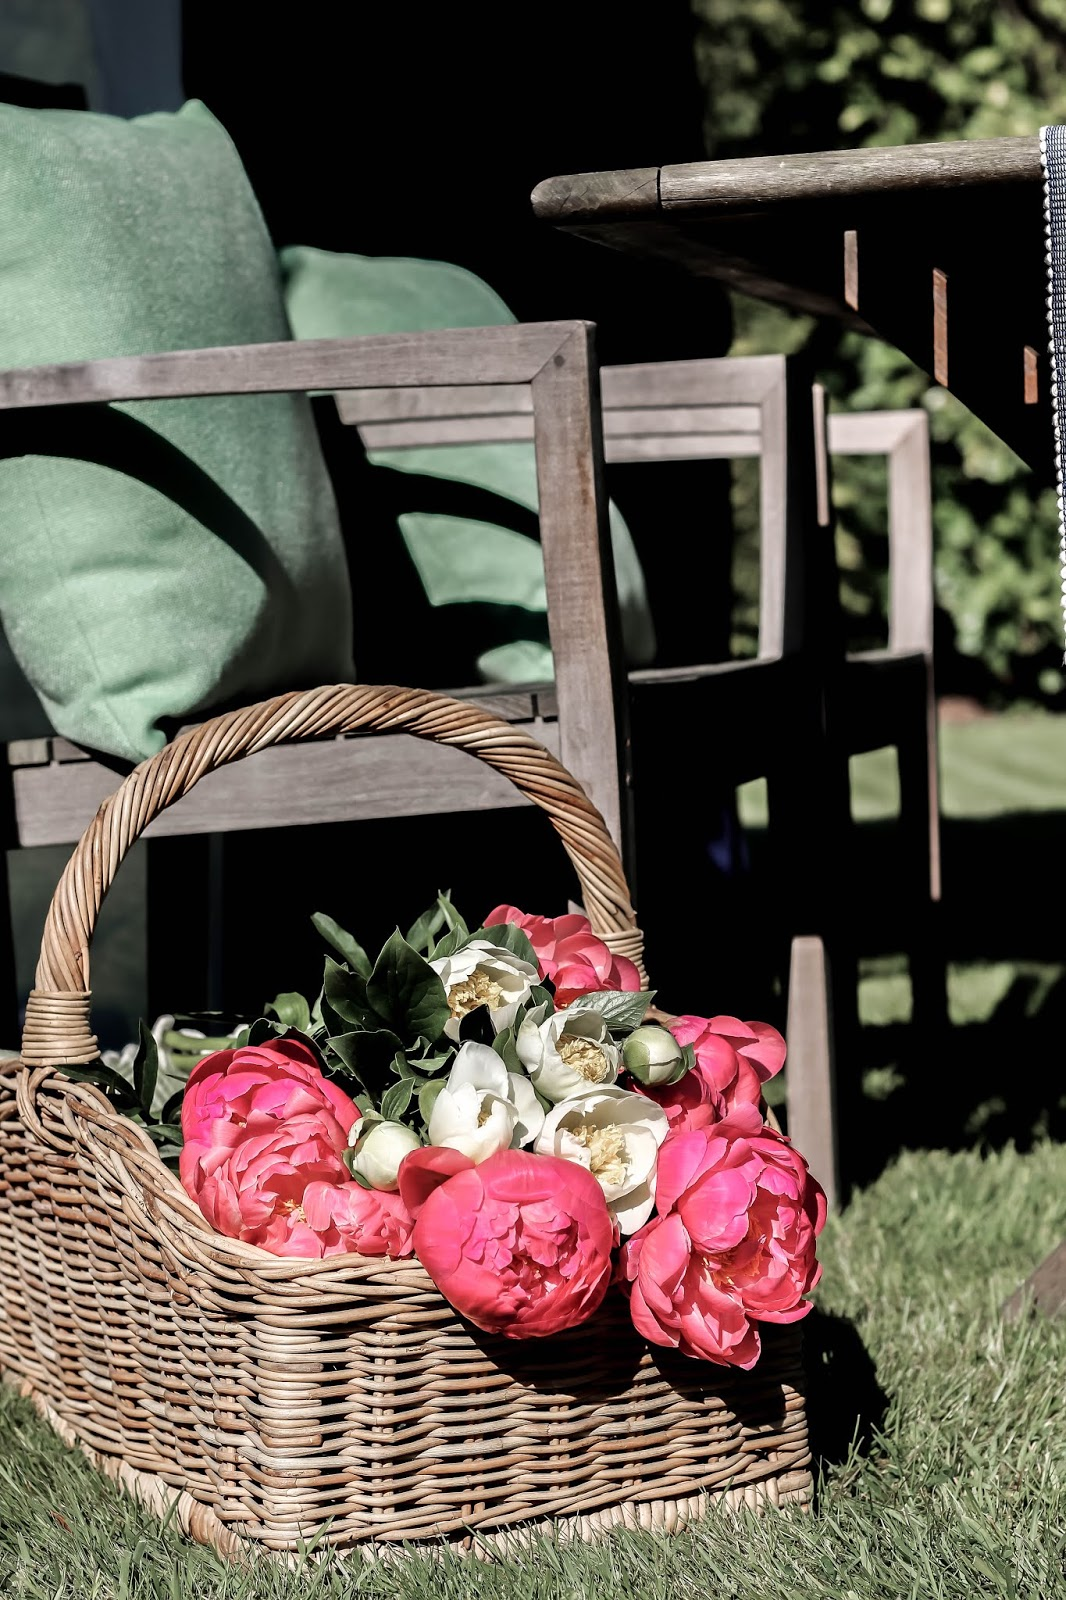 Straw Basket Filled with Flower Bouquets Peonies